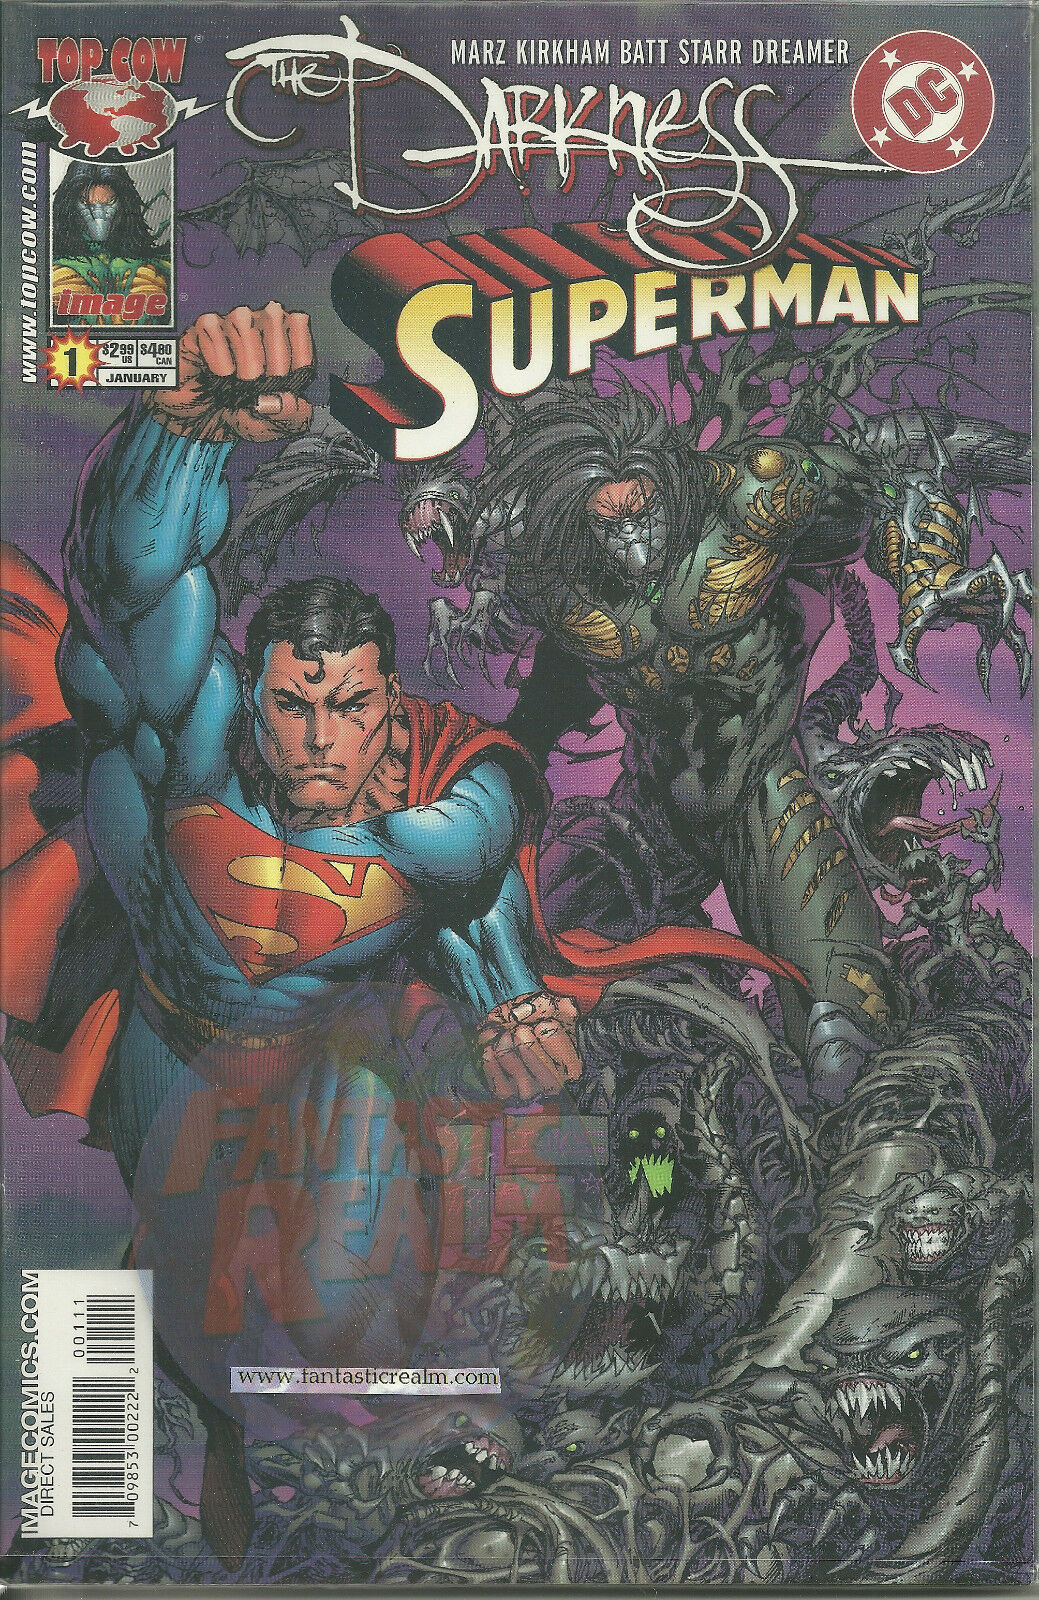 The Darkness Superman #1 DC COMICS